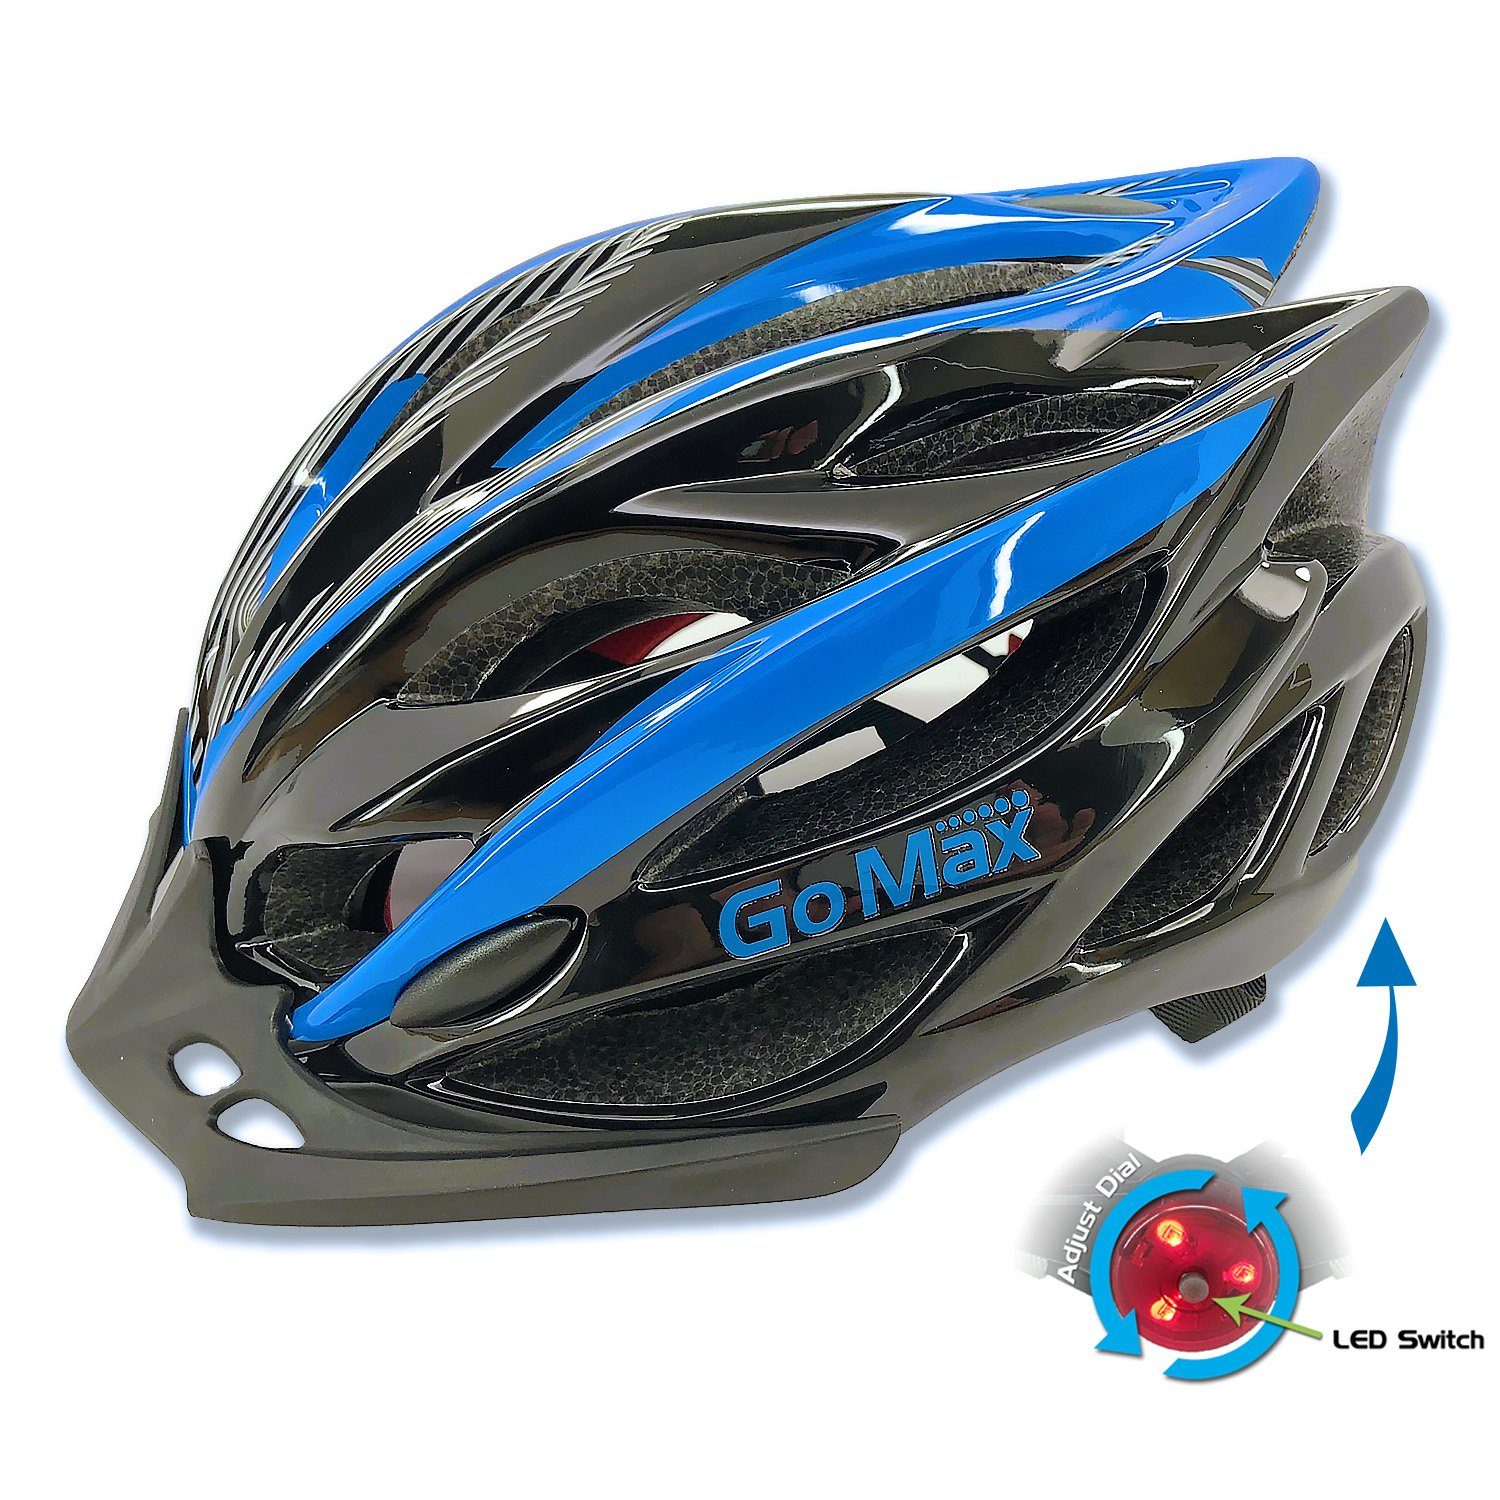 Adult Bike Helmet Adjustable Ultralight Inner Padding Chin Protector, visor w/Rear LED Tail Light